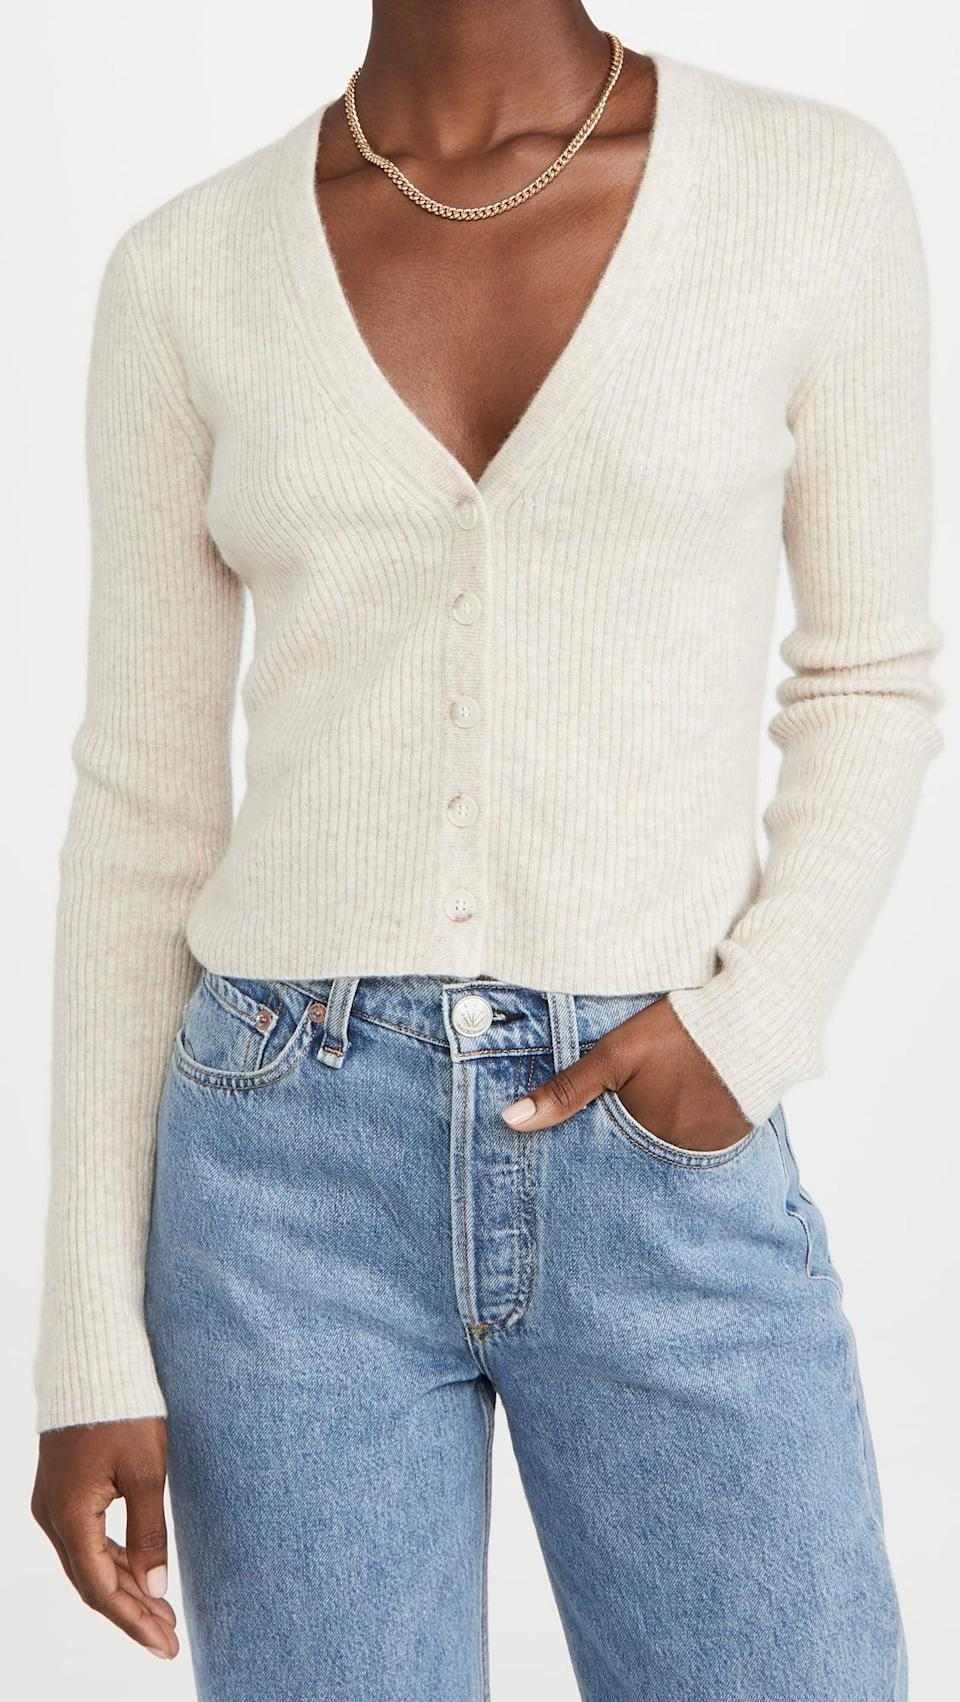 <p>Pair this <span>Naadam Ribbed Cashmere Cardigan</span> ($265) with jeans and mules for a polished look.</p>